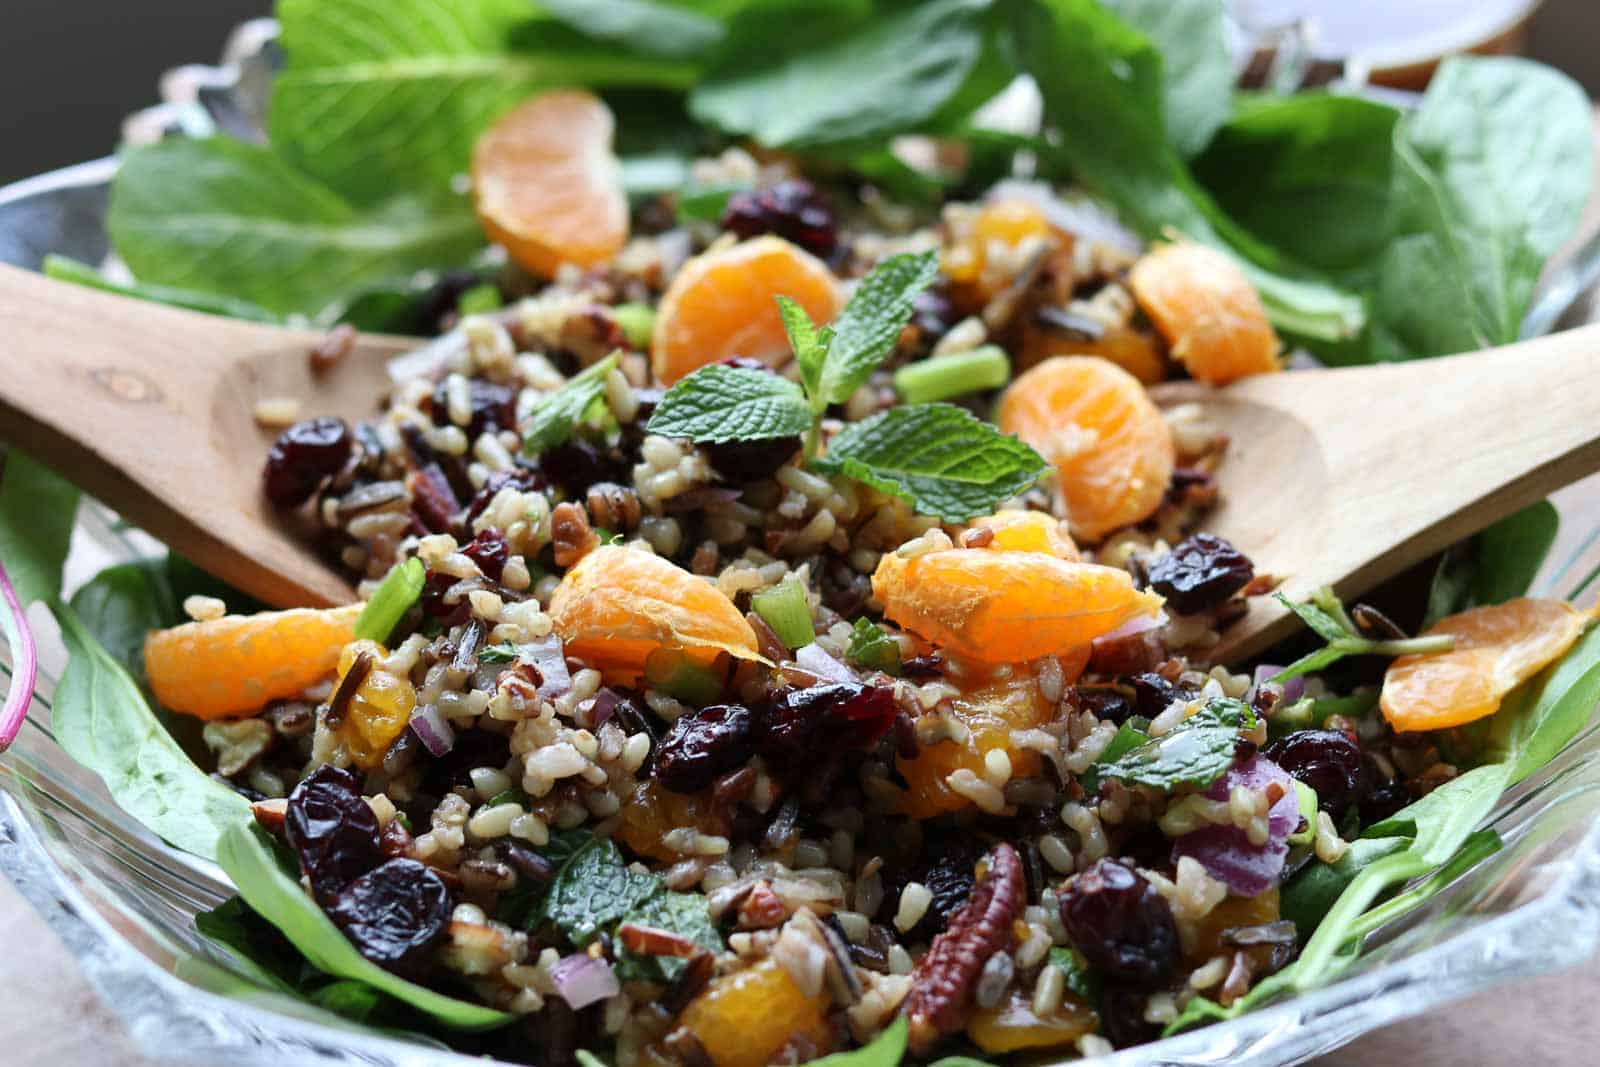 Mandarin Wild Rice Salad is a hearty autumn salad with cranberries, pecans, green onions, chopped mint and mandarins with a delightful orange vinaigrette in a glass bowl from Gourmet Done Skinny